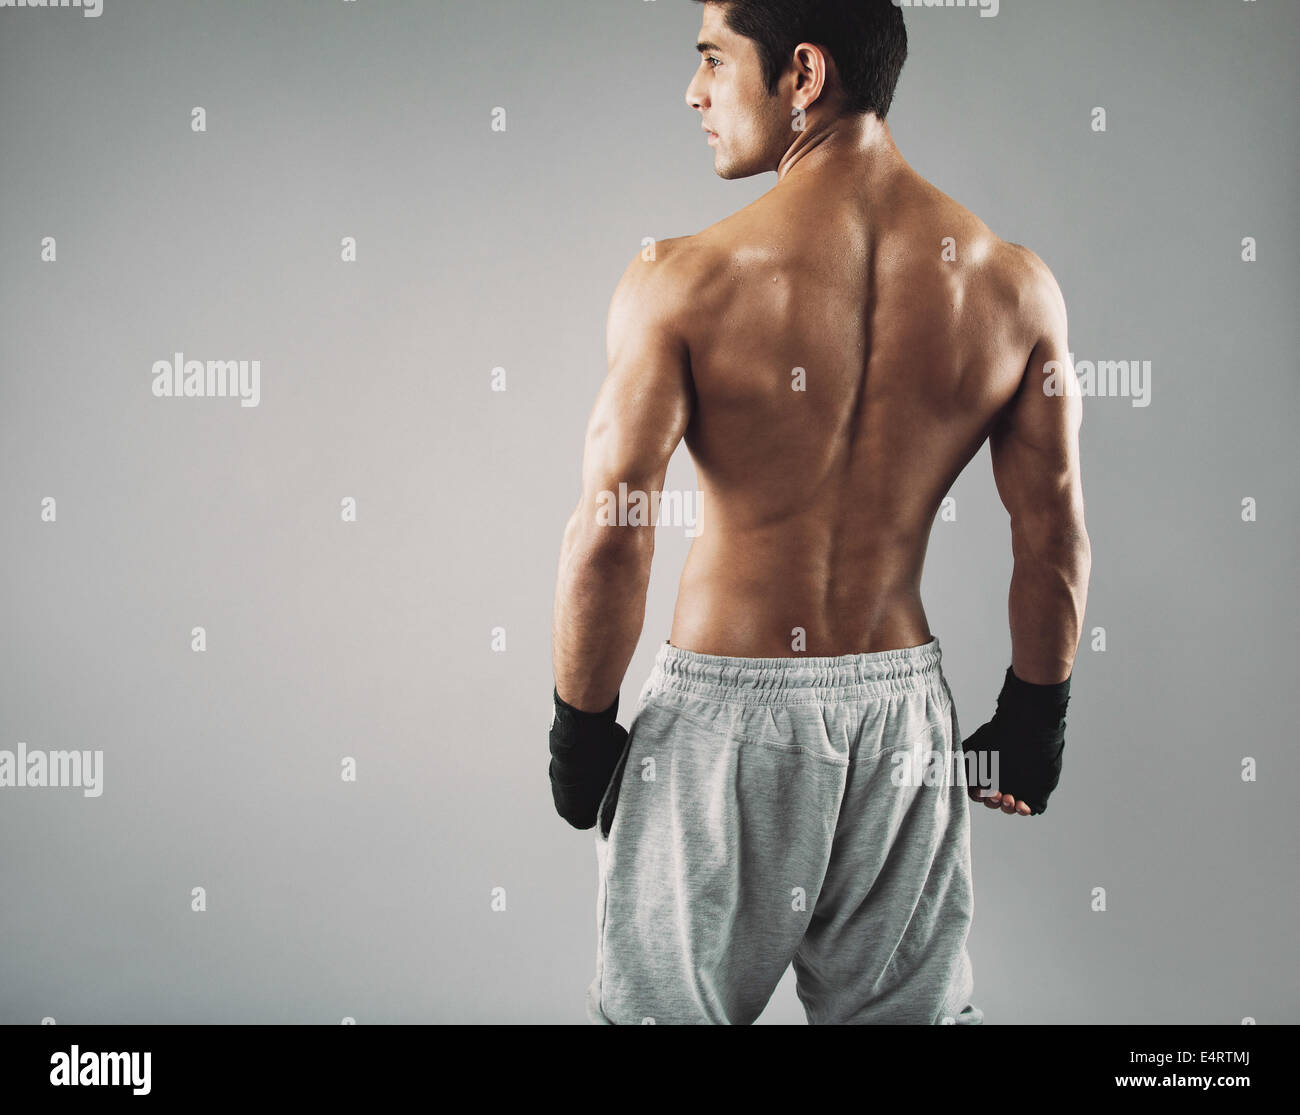 Boxer That Fit Wiring Diagrams Sierra Parts Diagram Http Wwwjustanswercom Gm 4jz3w1999gmcenvoy Rear View Of Muscular Young Male Standing Looking Away Rh Alamy Com